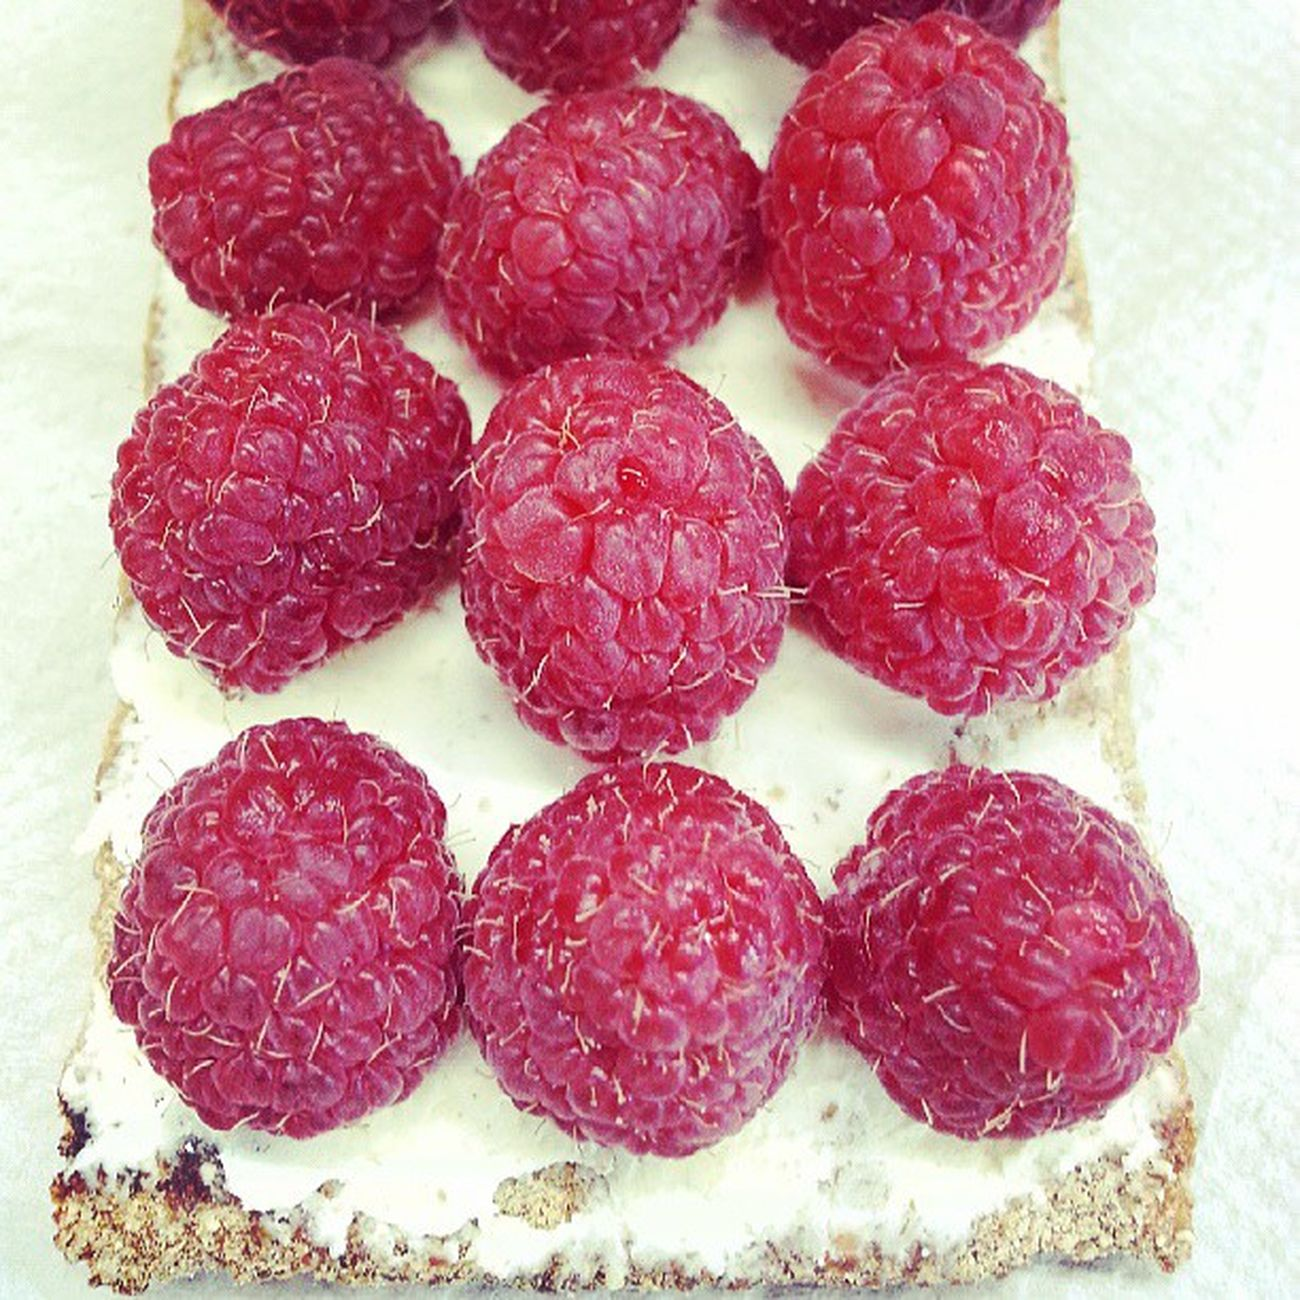 super delicious Crispbread  with Creamcheese and Rasberries